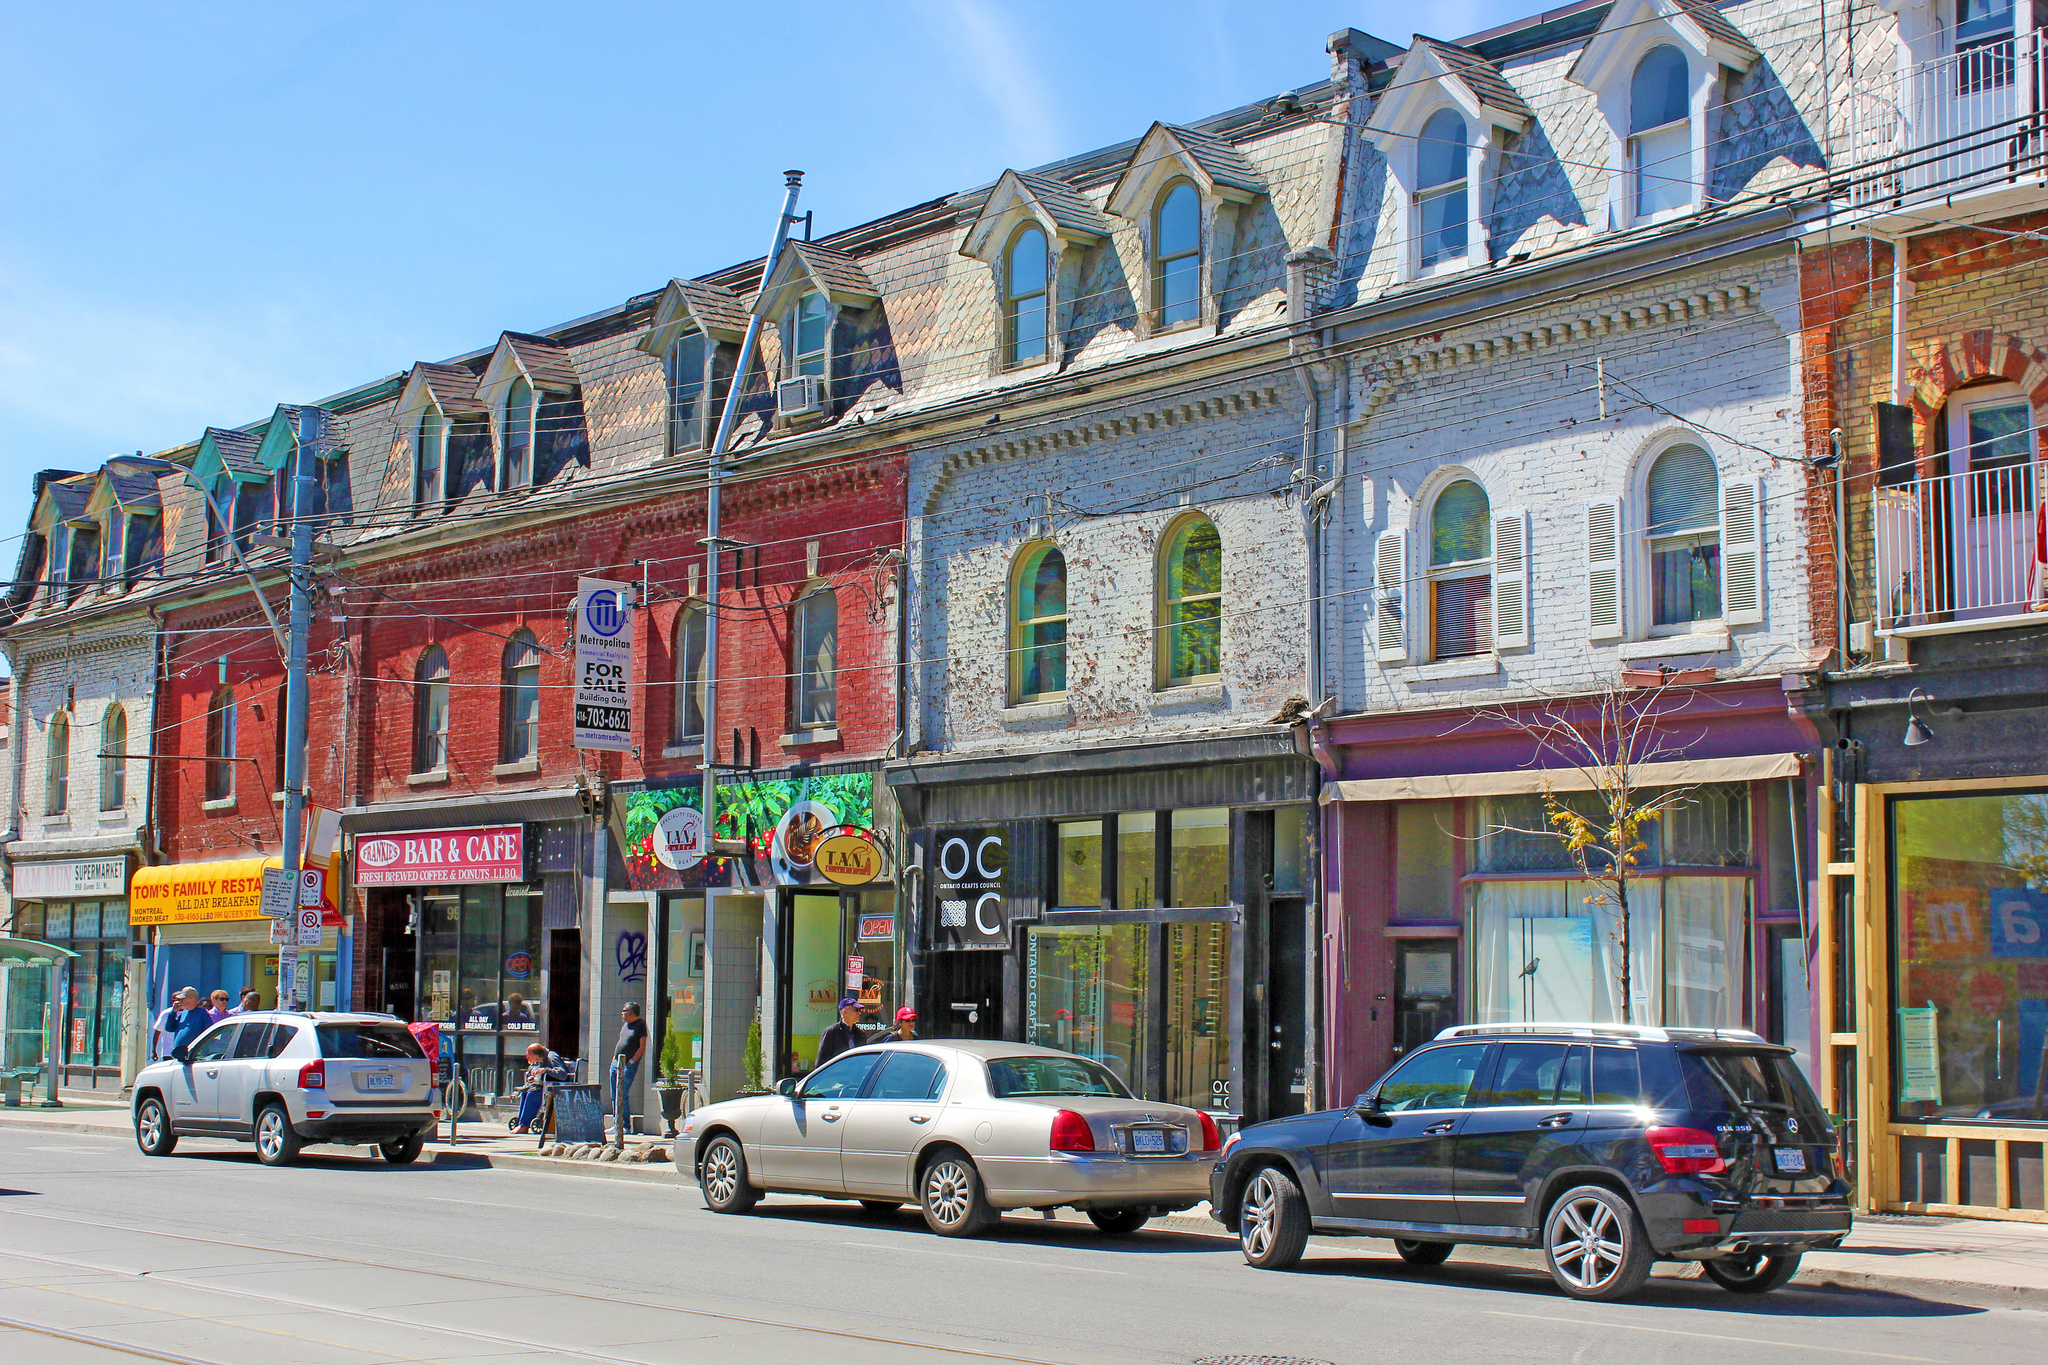 Queen West has a much bolder vibe than King West (Image Credit: Don Gunn, Flickr).